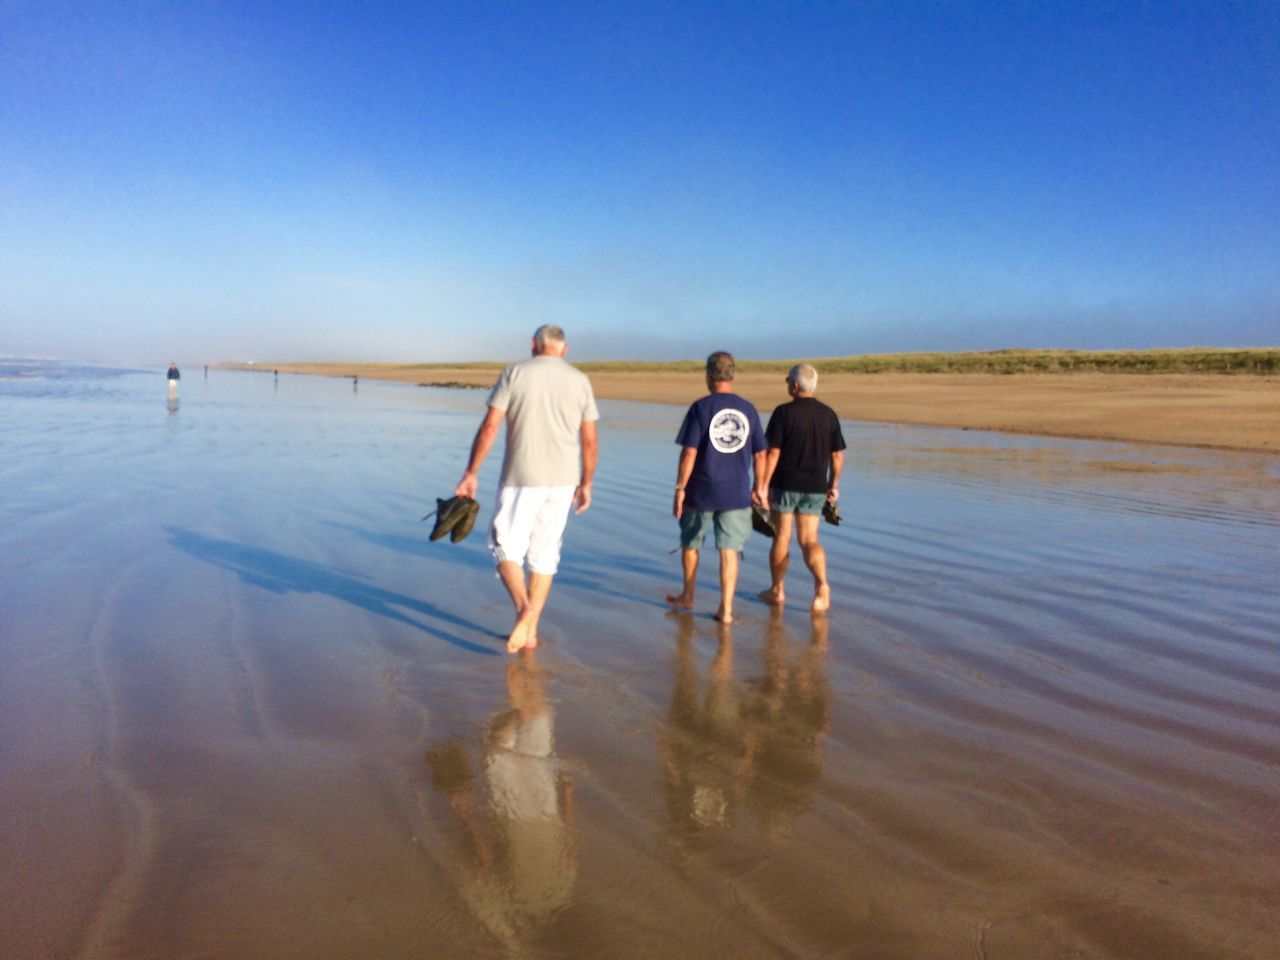 walking, rear view, nature, water, real people, sea, men, full length, outdoors, day, beach, togetherness, clear sky, sky, beauty in nature, people